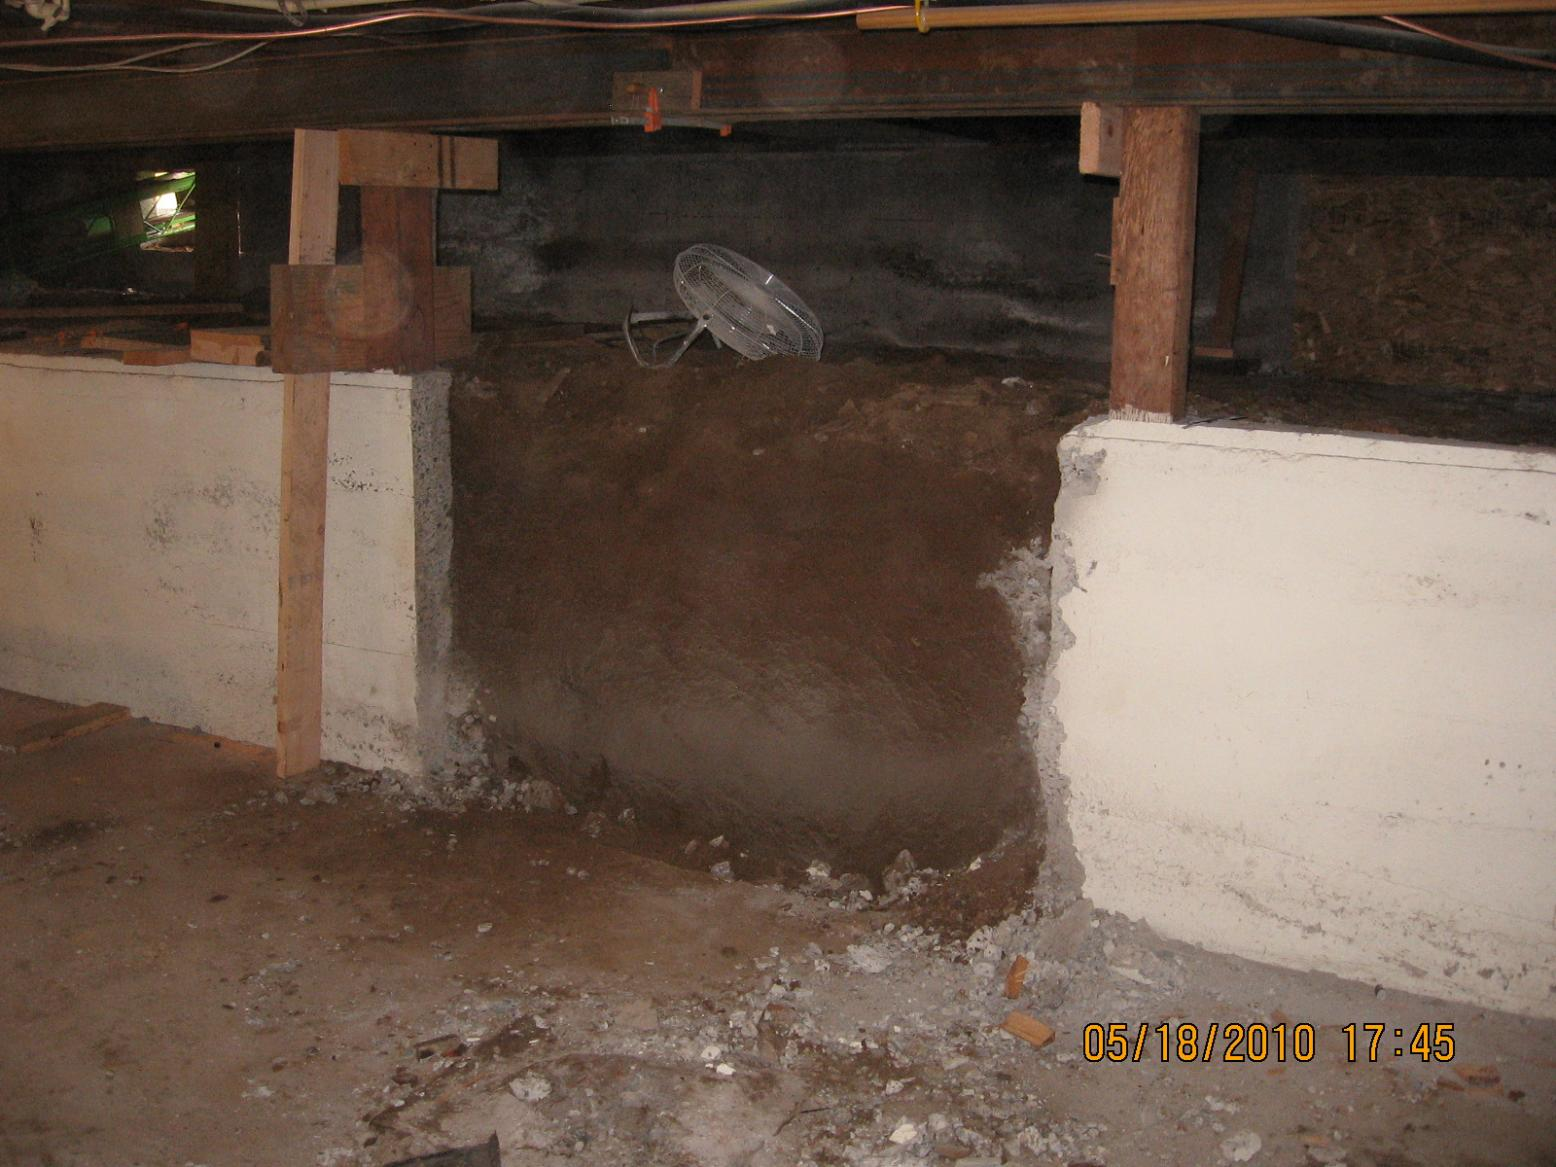 Crawl space excavation remodeling picture post for Crawl basement